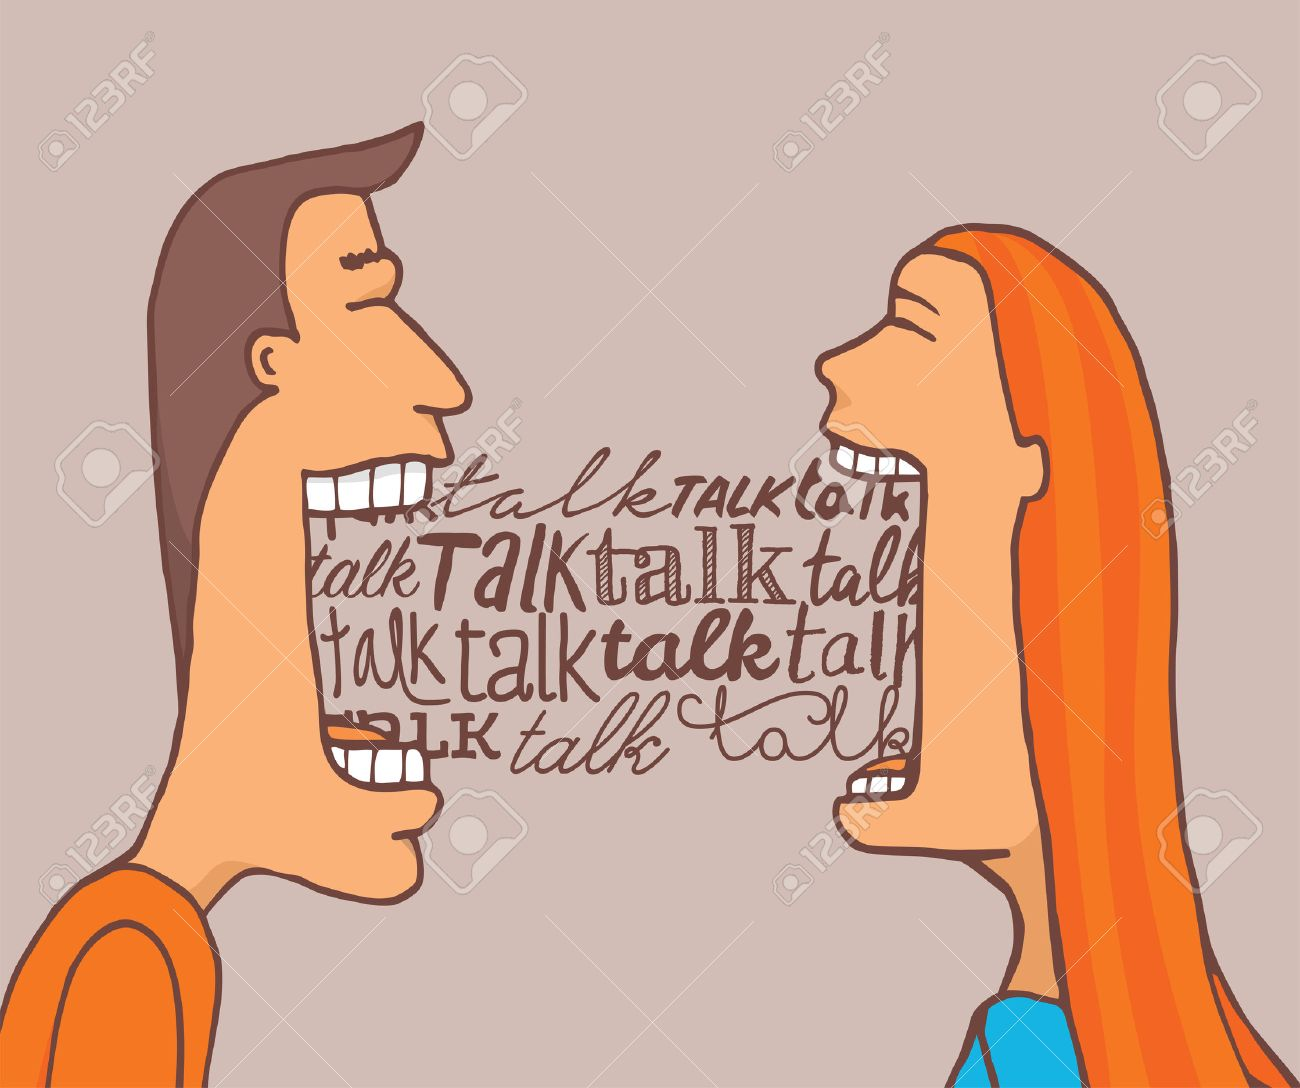 Talking  >> Cartoon Illustration Of Couple Talking A Lot And Sharing A